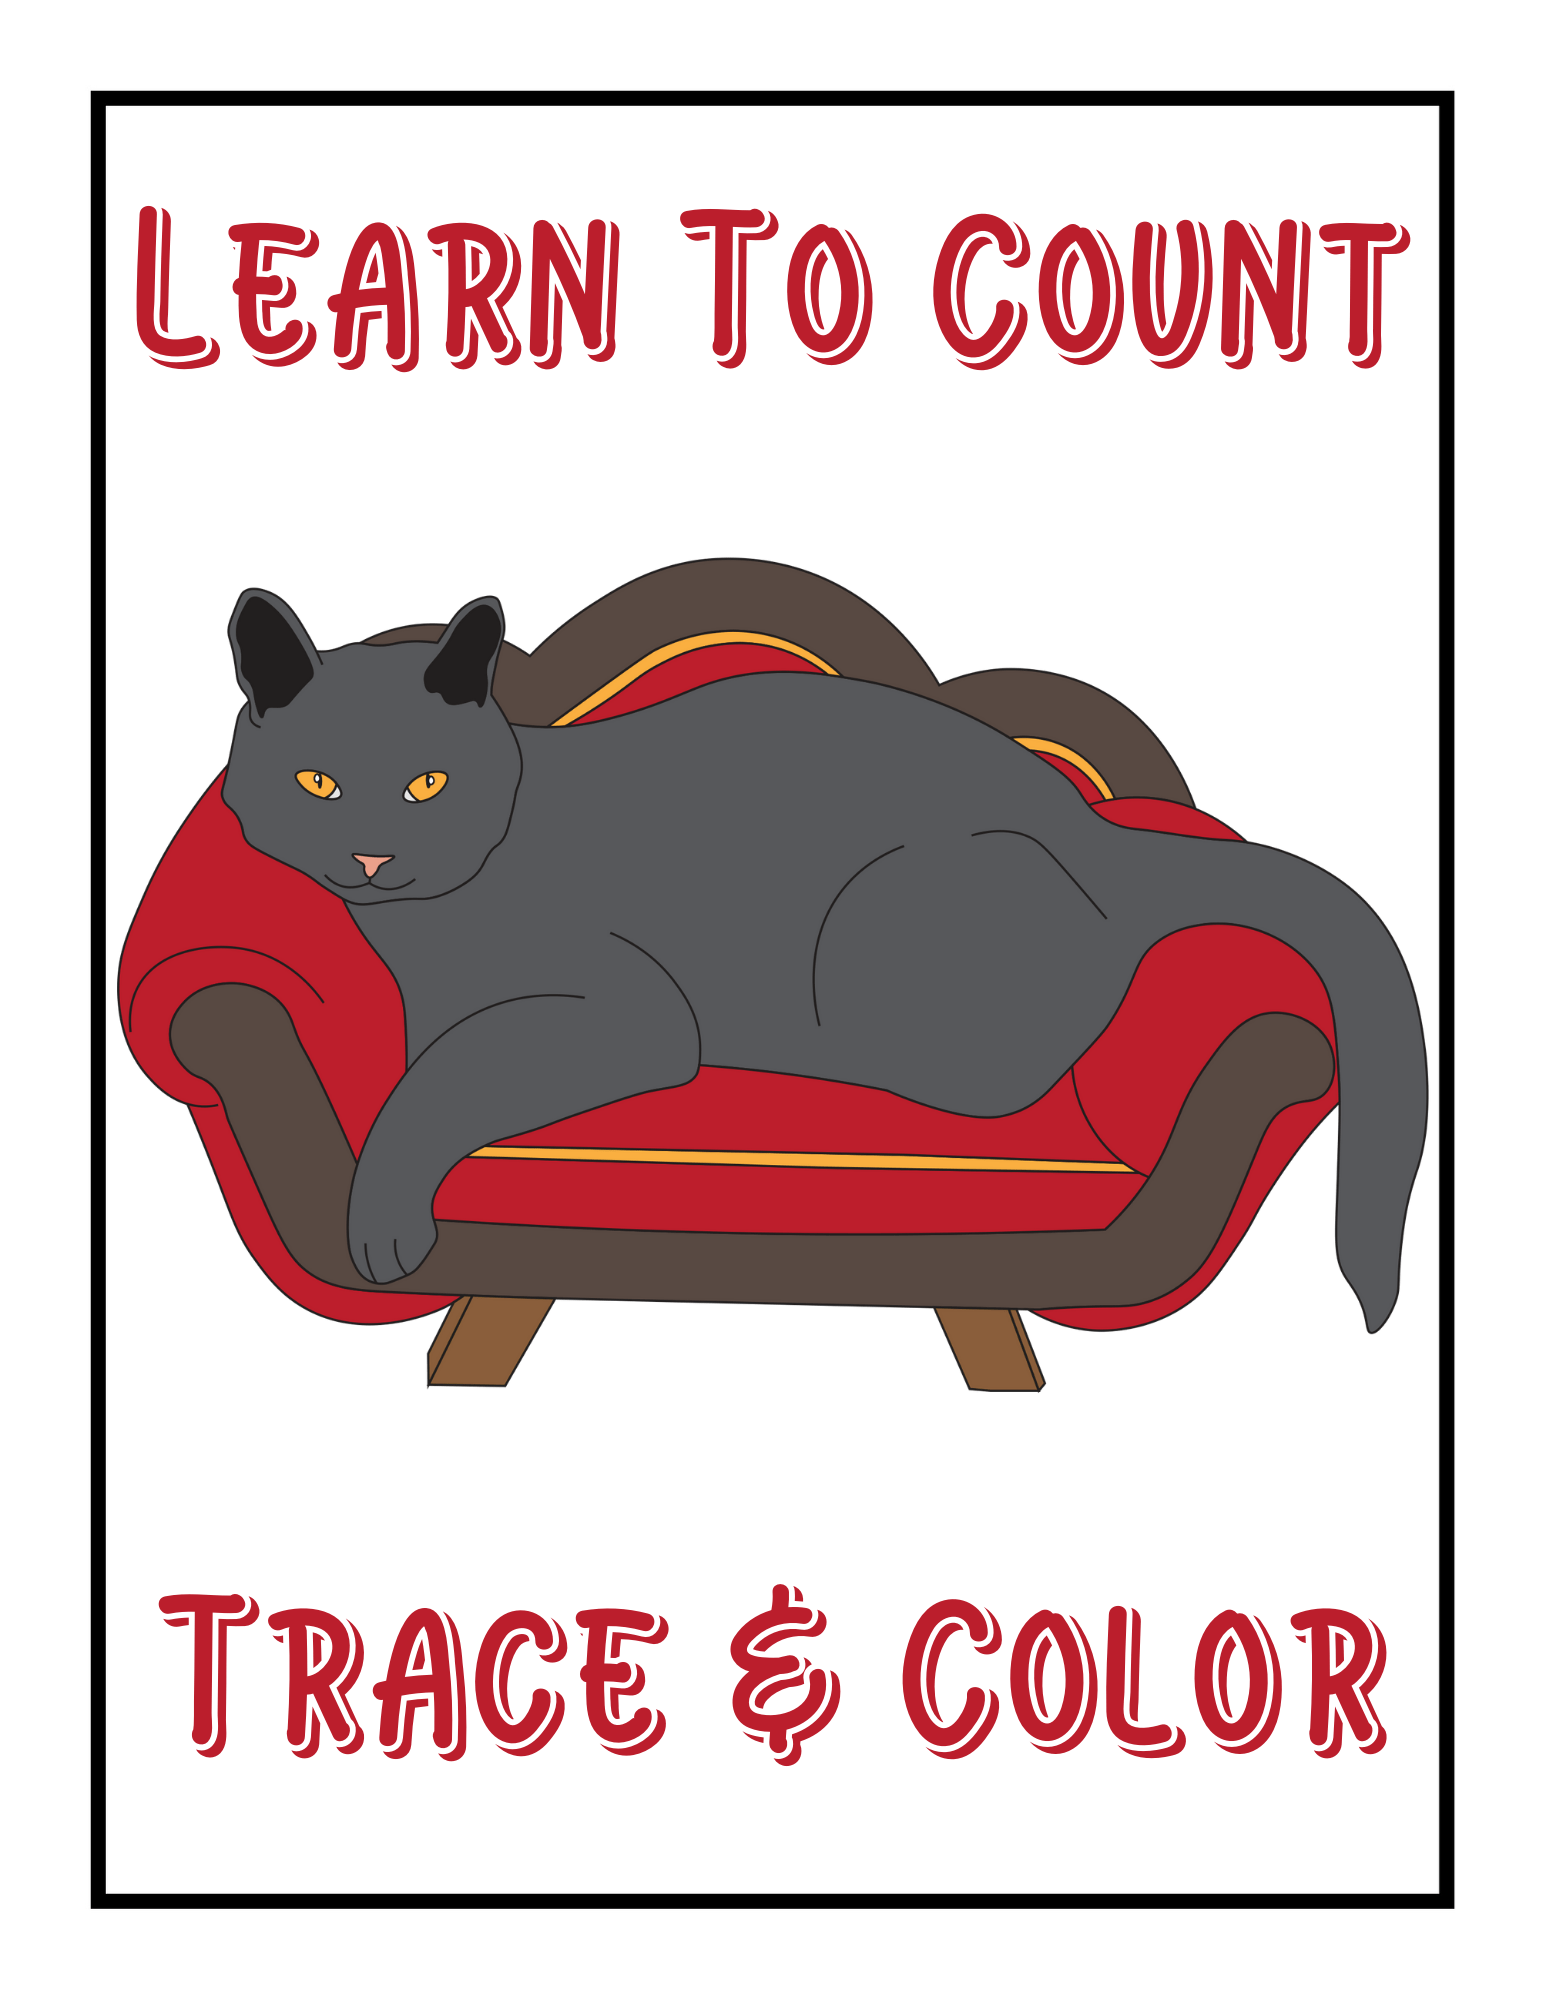 LearnToCount